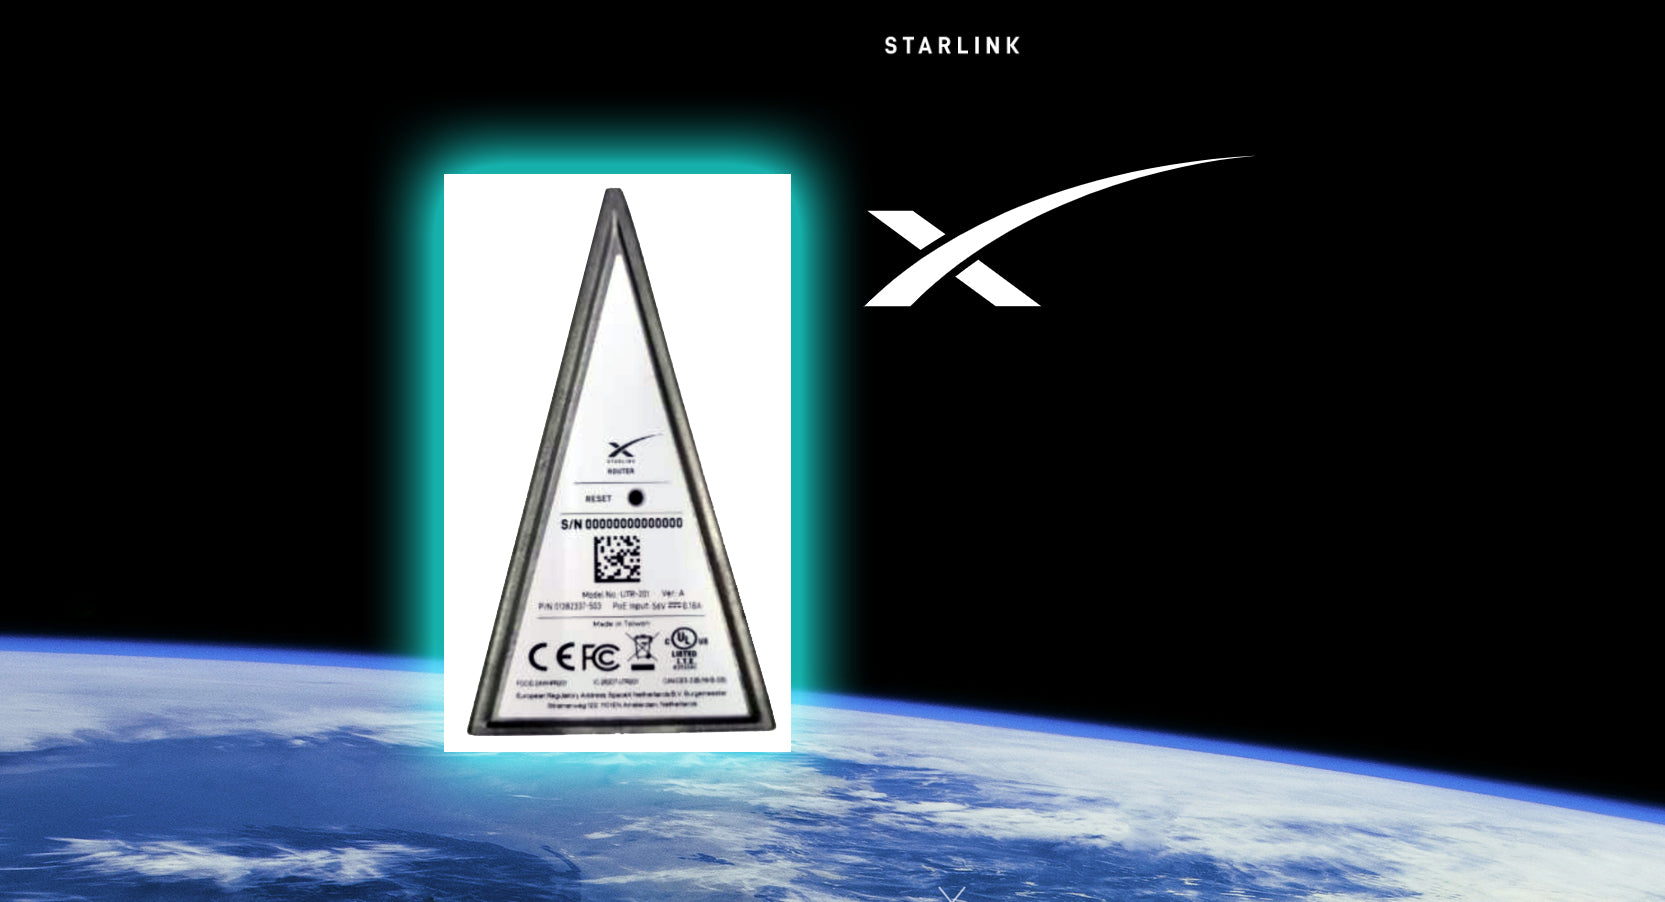 FCC approves the operation of 'Starlink Router' for SpaceX's internet network